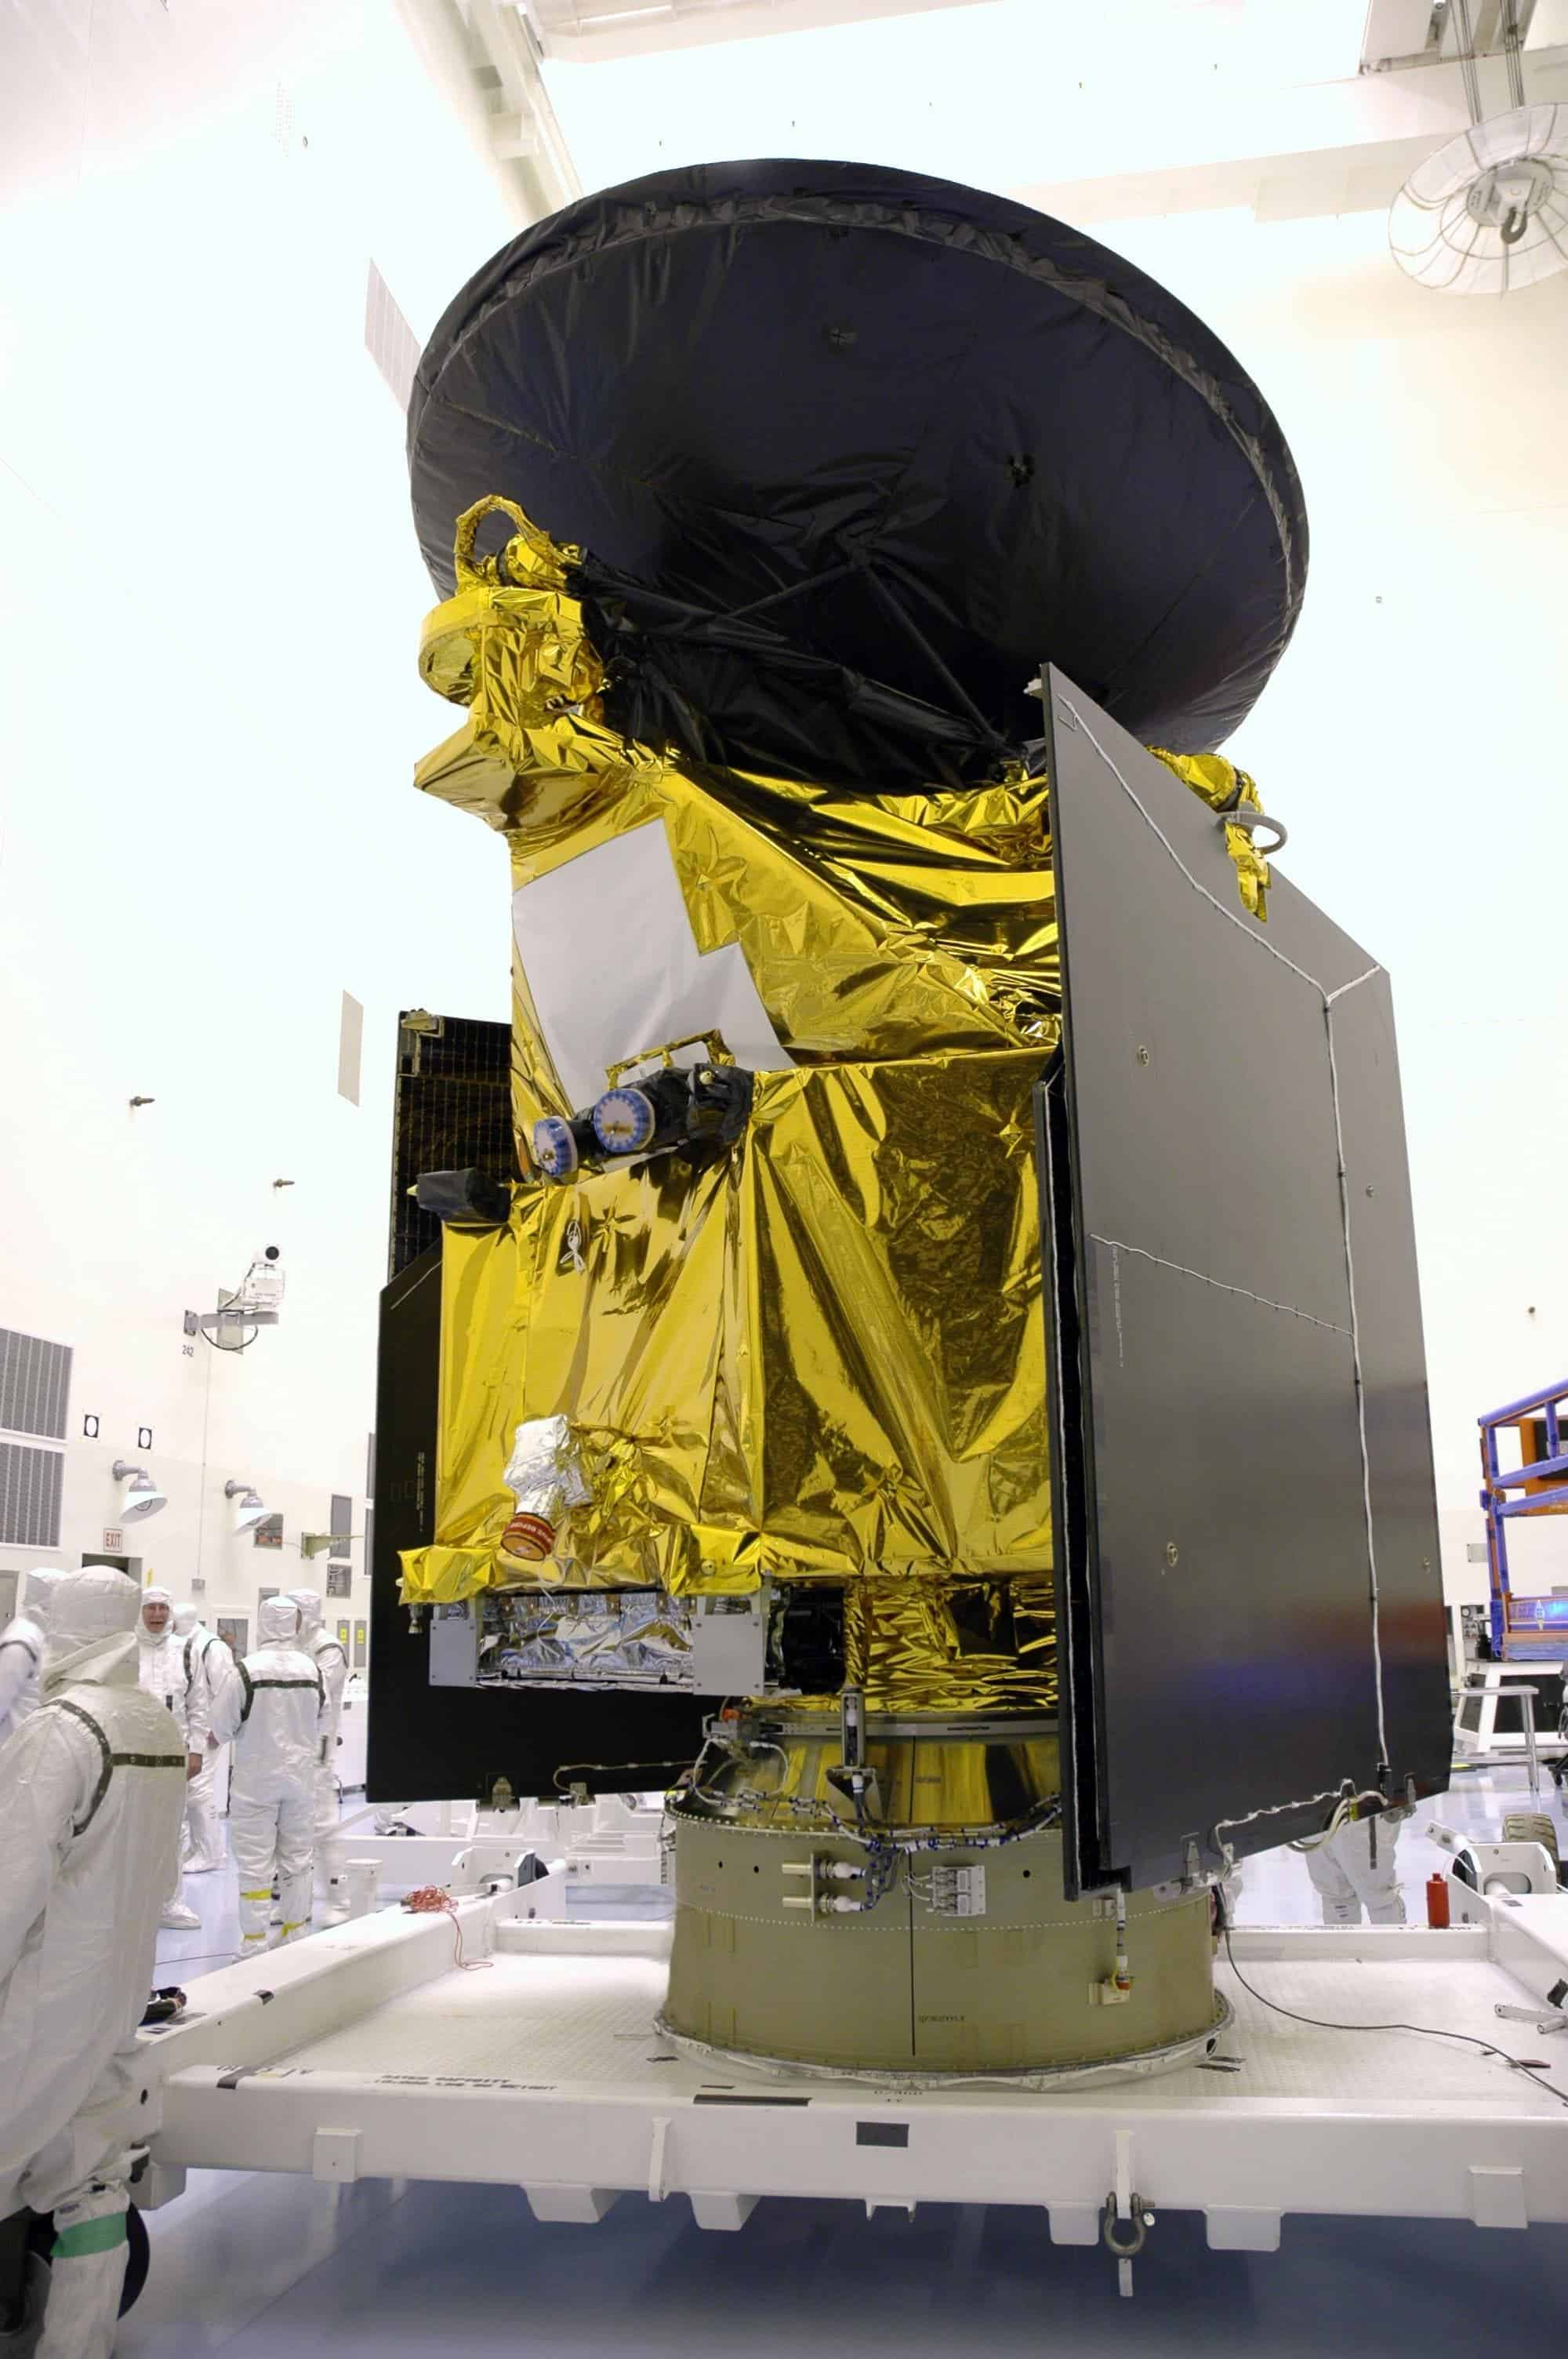 Foil Insulation Blanket Why Satellites Have Those Golden Foils On Them And How It Saves